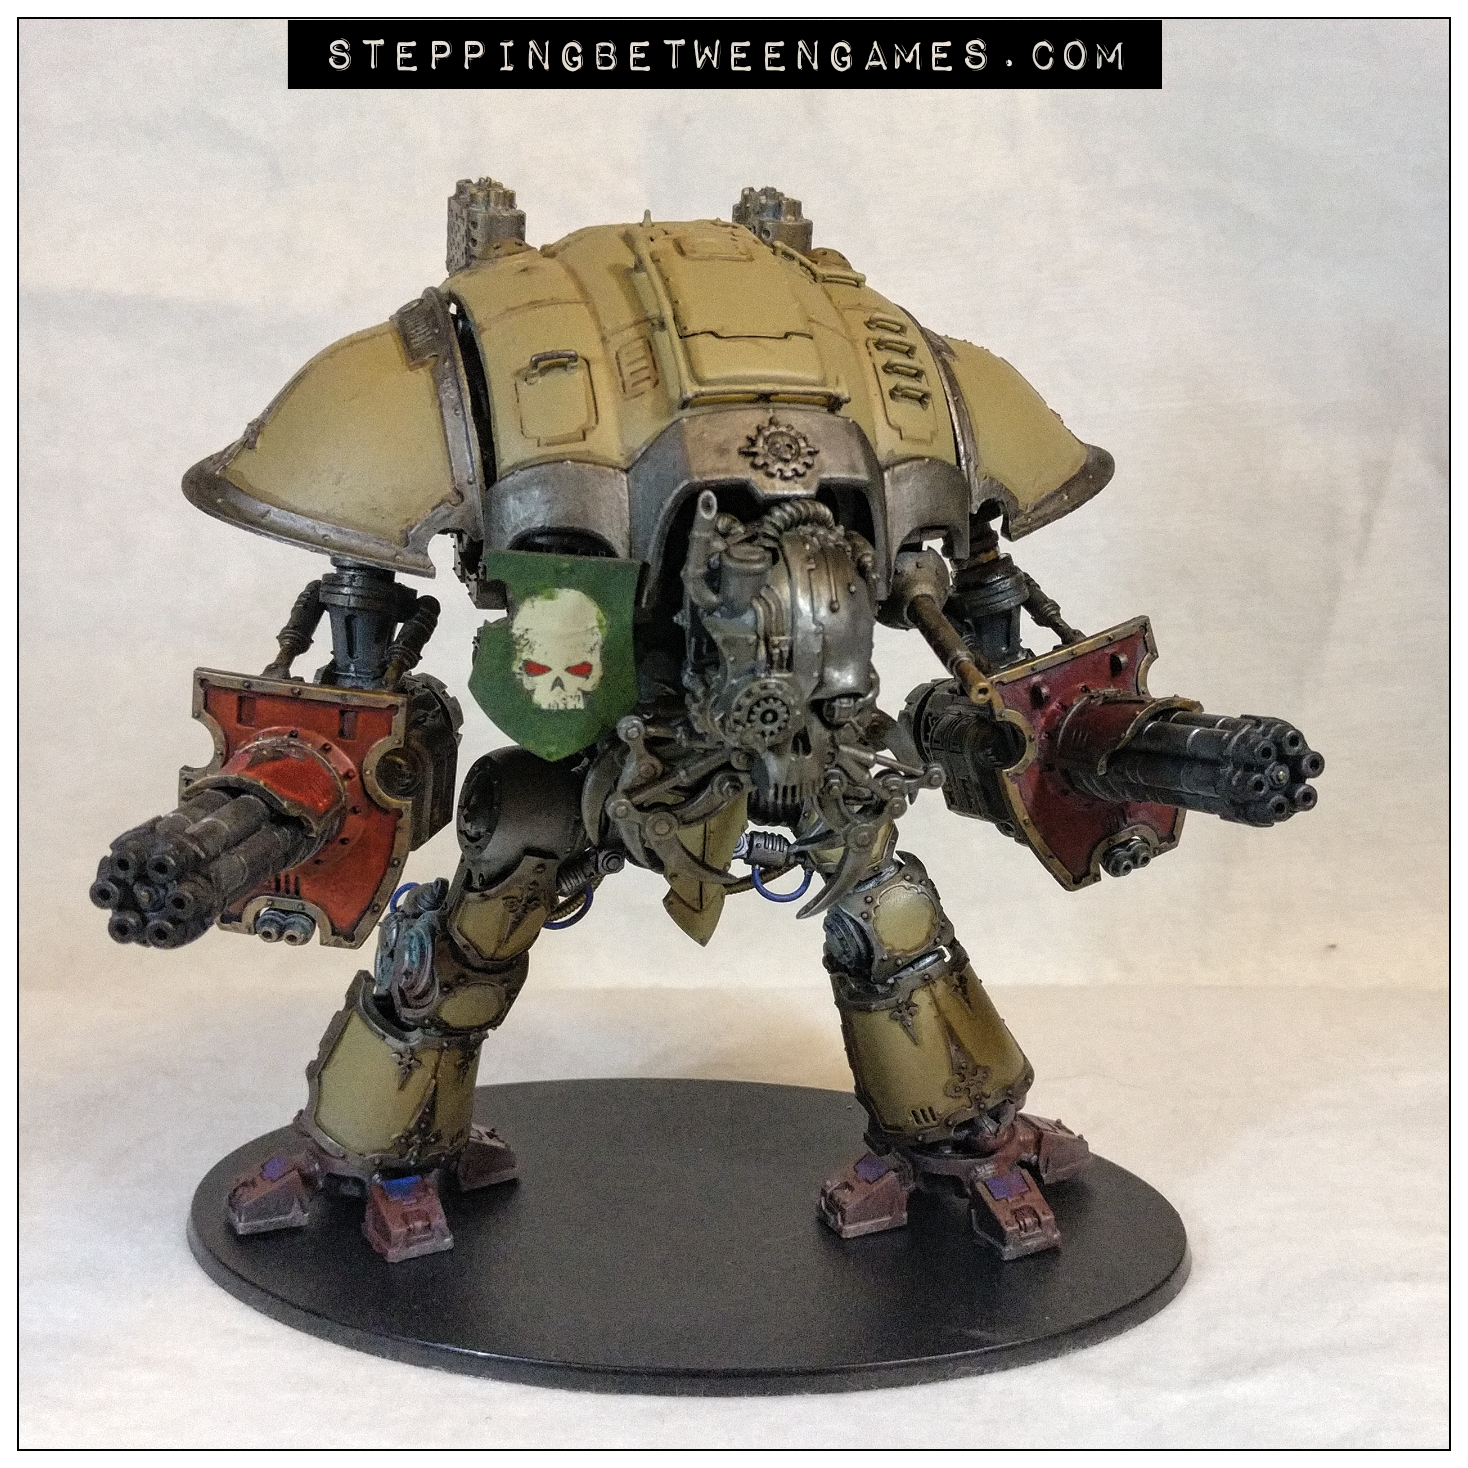 House Malinax Chaos Knight two avenger gatling cannons